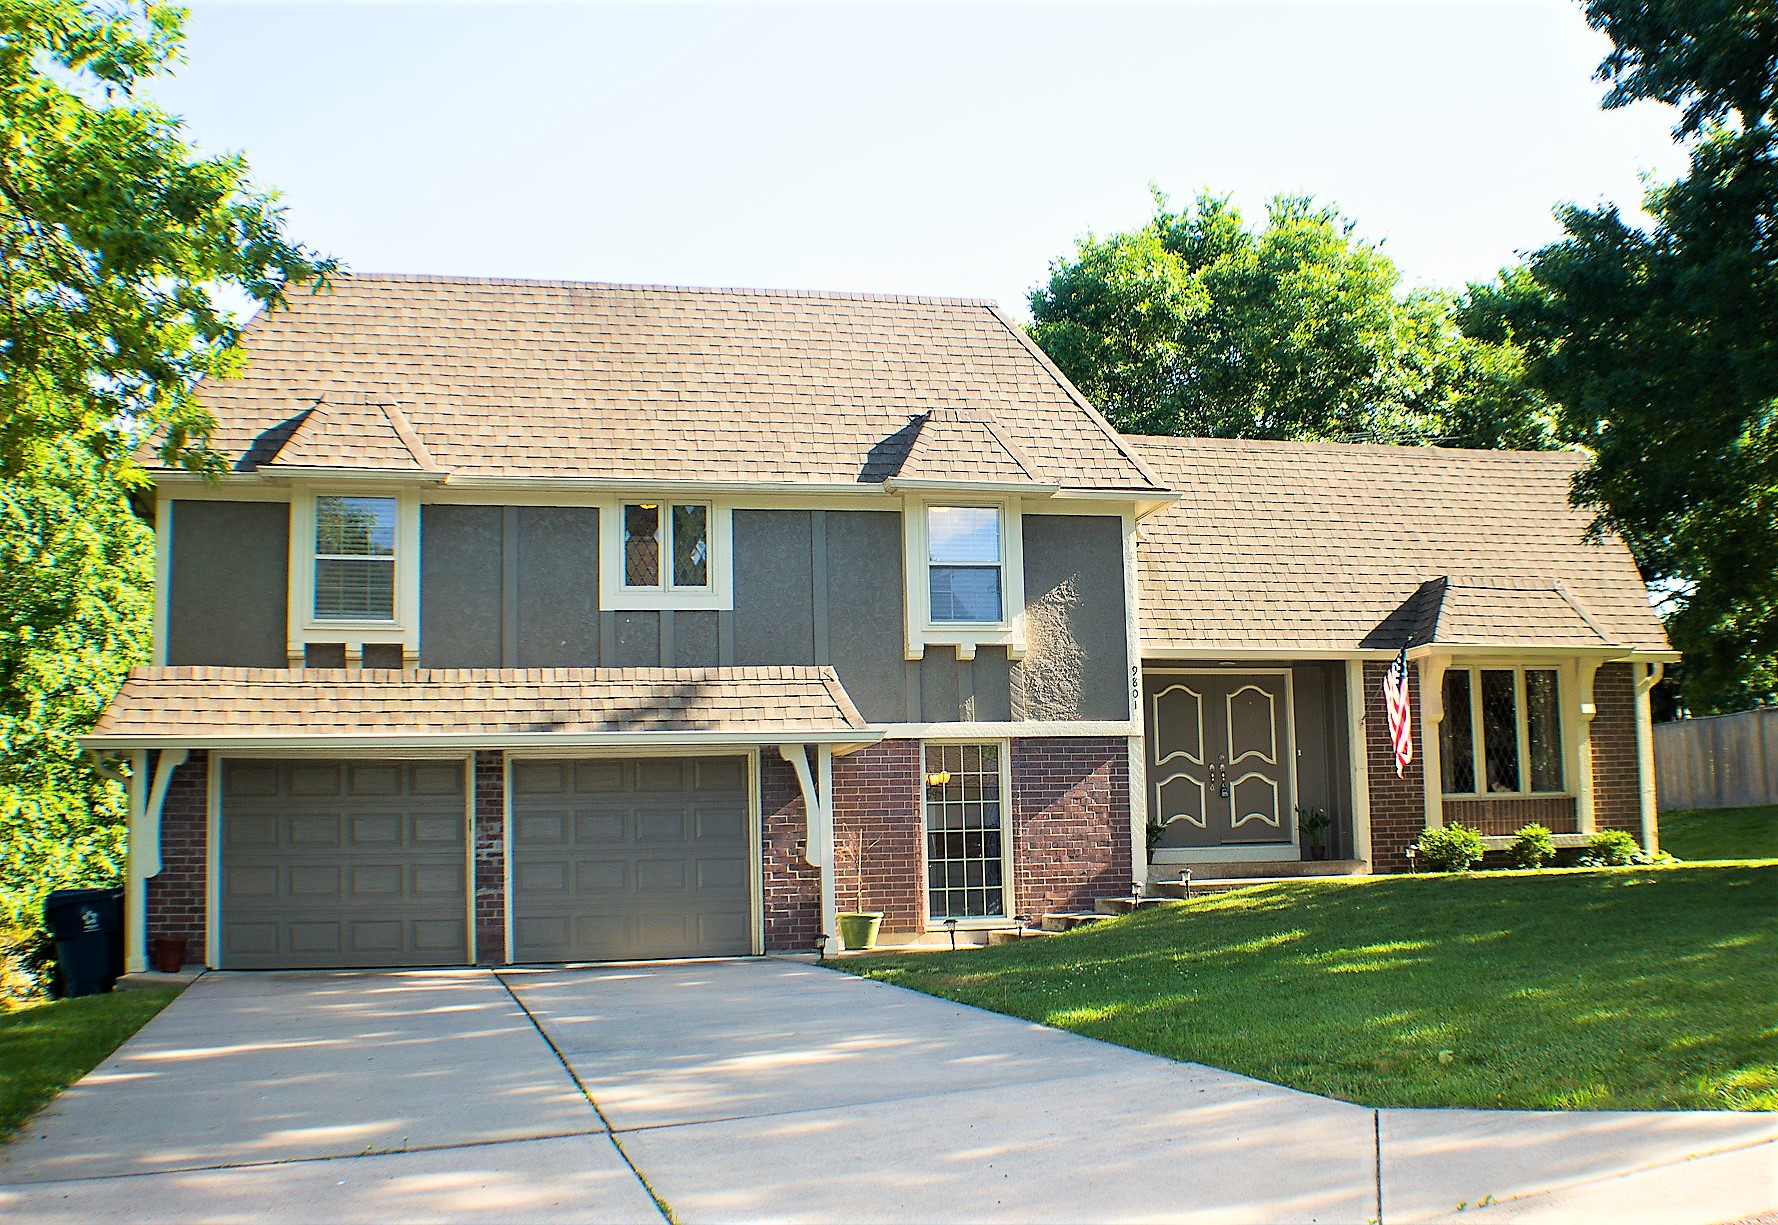 Overland Park Homes For Sale NEW Listing At 9801 W 104th